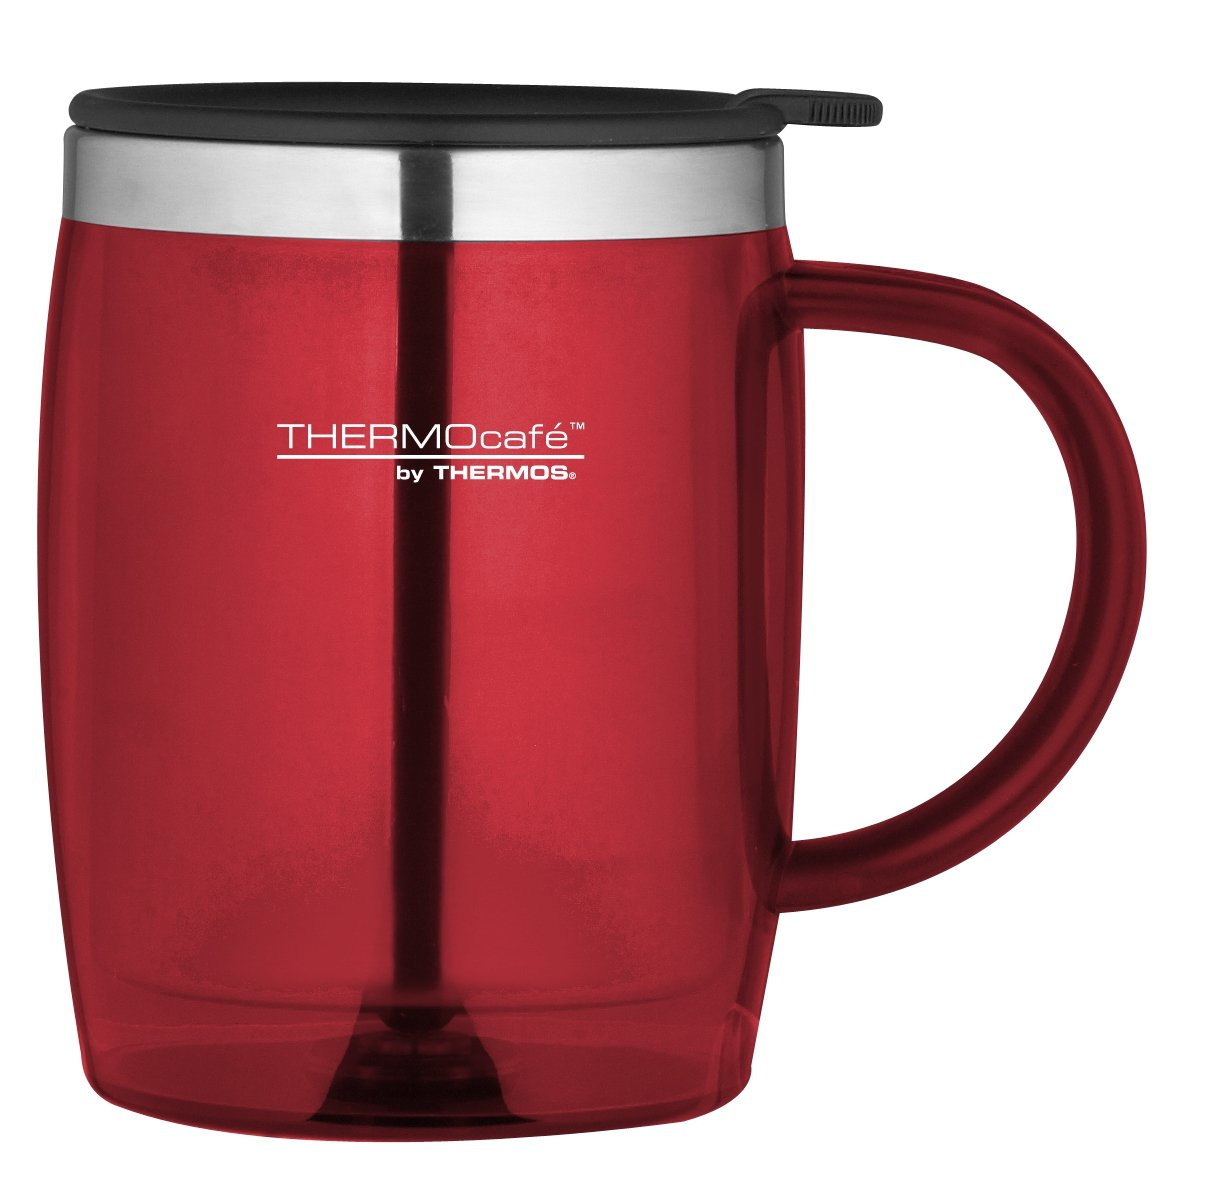 Thermocaf plastic and stainless steel desk travel mug for Thermos caffe